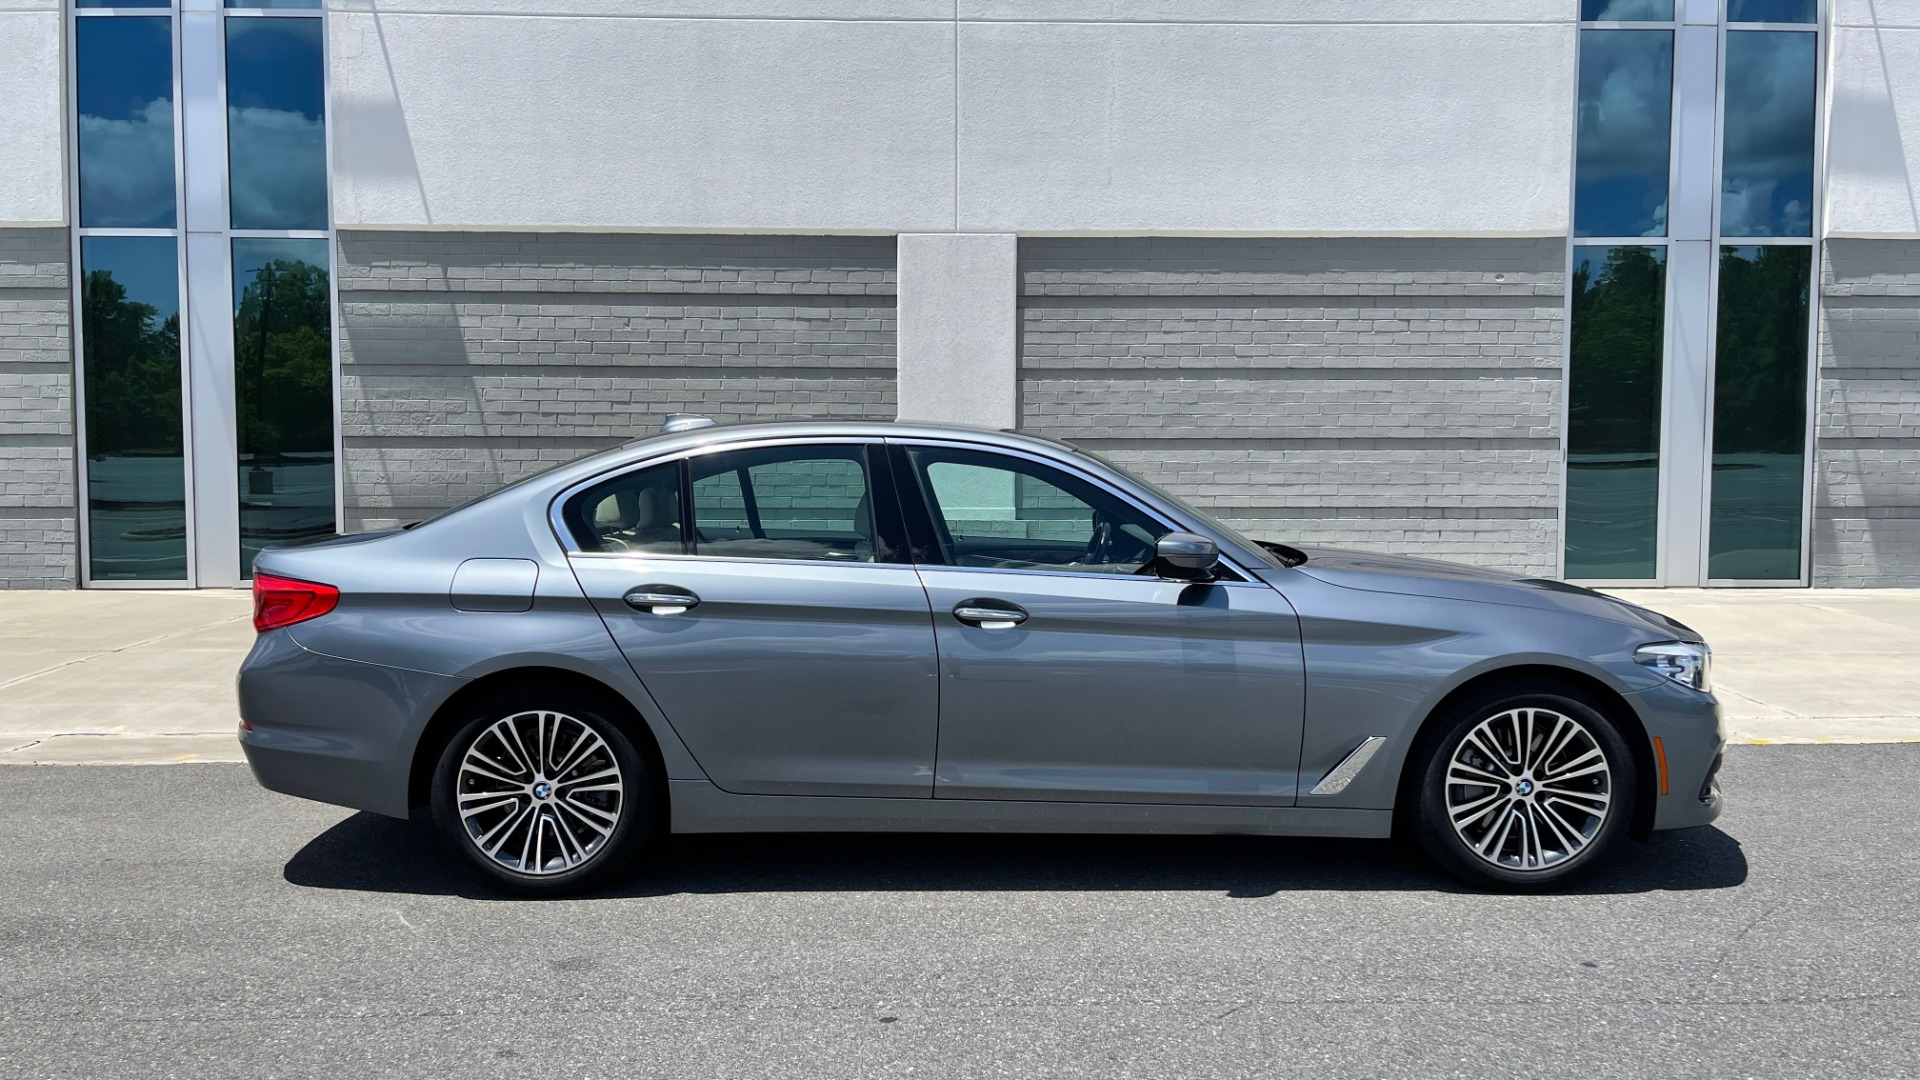 Used 2017 BMW 5 SERIES 530I PREMIUM / WIFI / NAV / SUNROOF / AUTO CLIMATE CONTROL for sale $31,795 at Formula Imports in Charlotte NC 28227 7